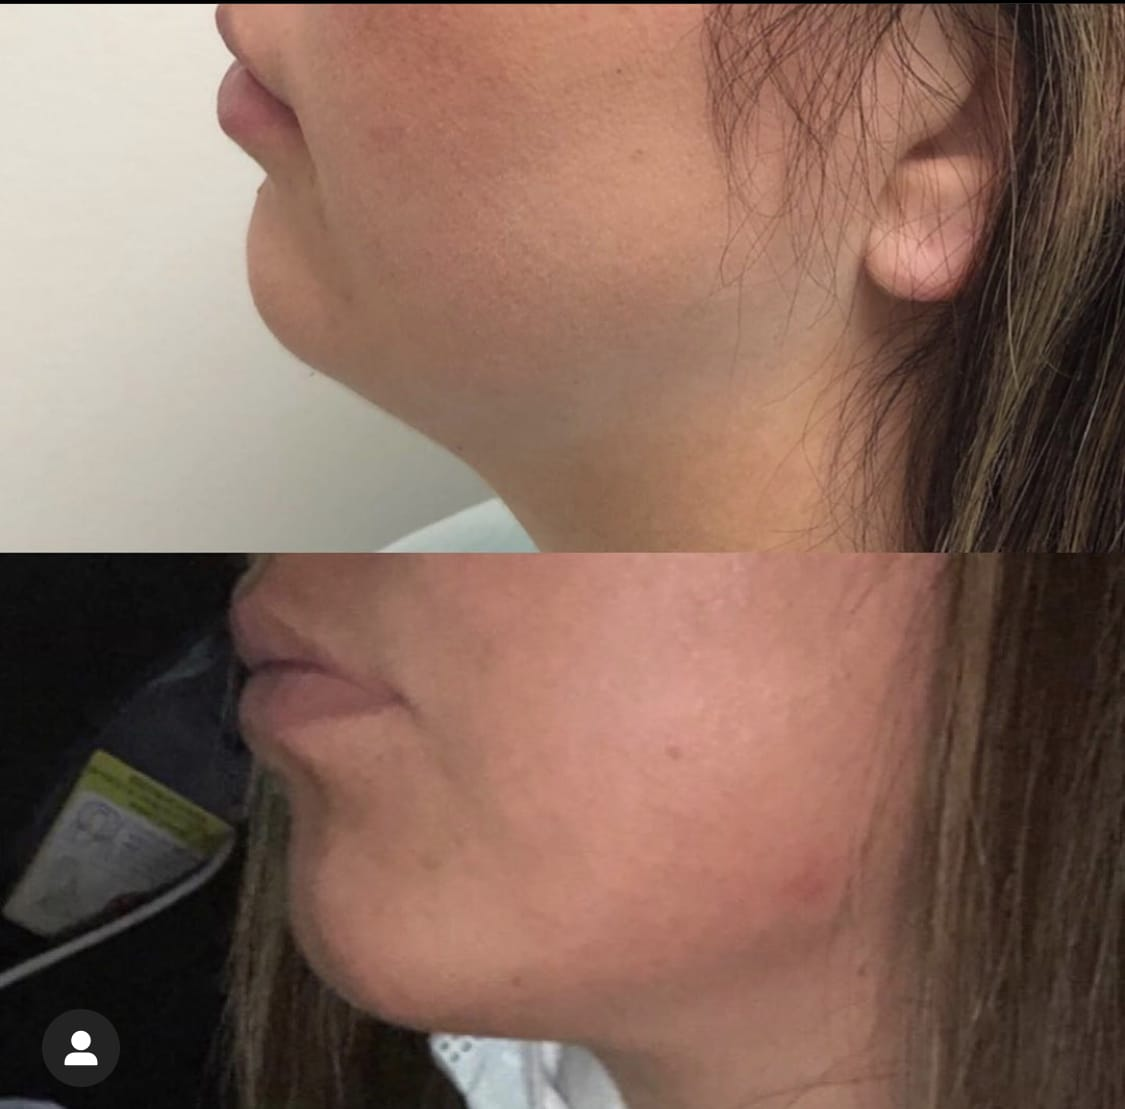 Juvederm patient before and after photos